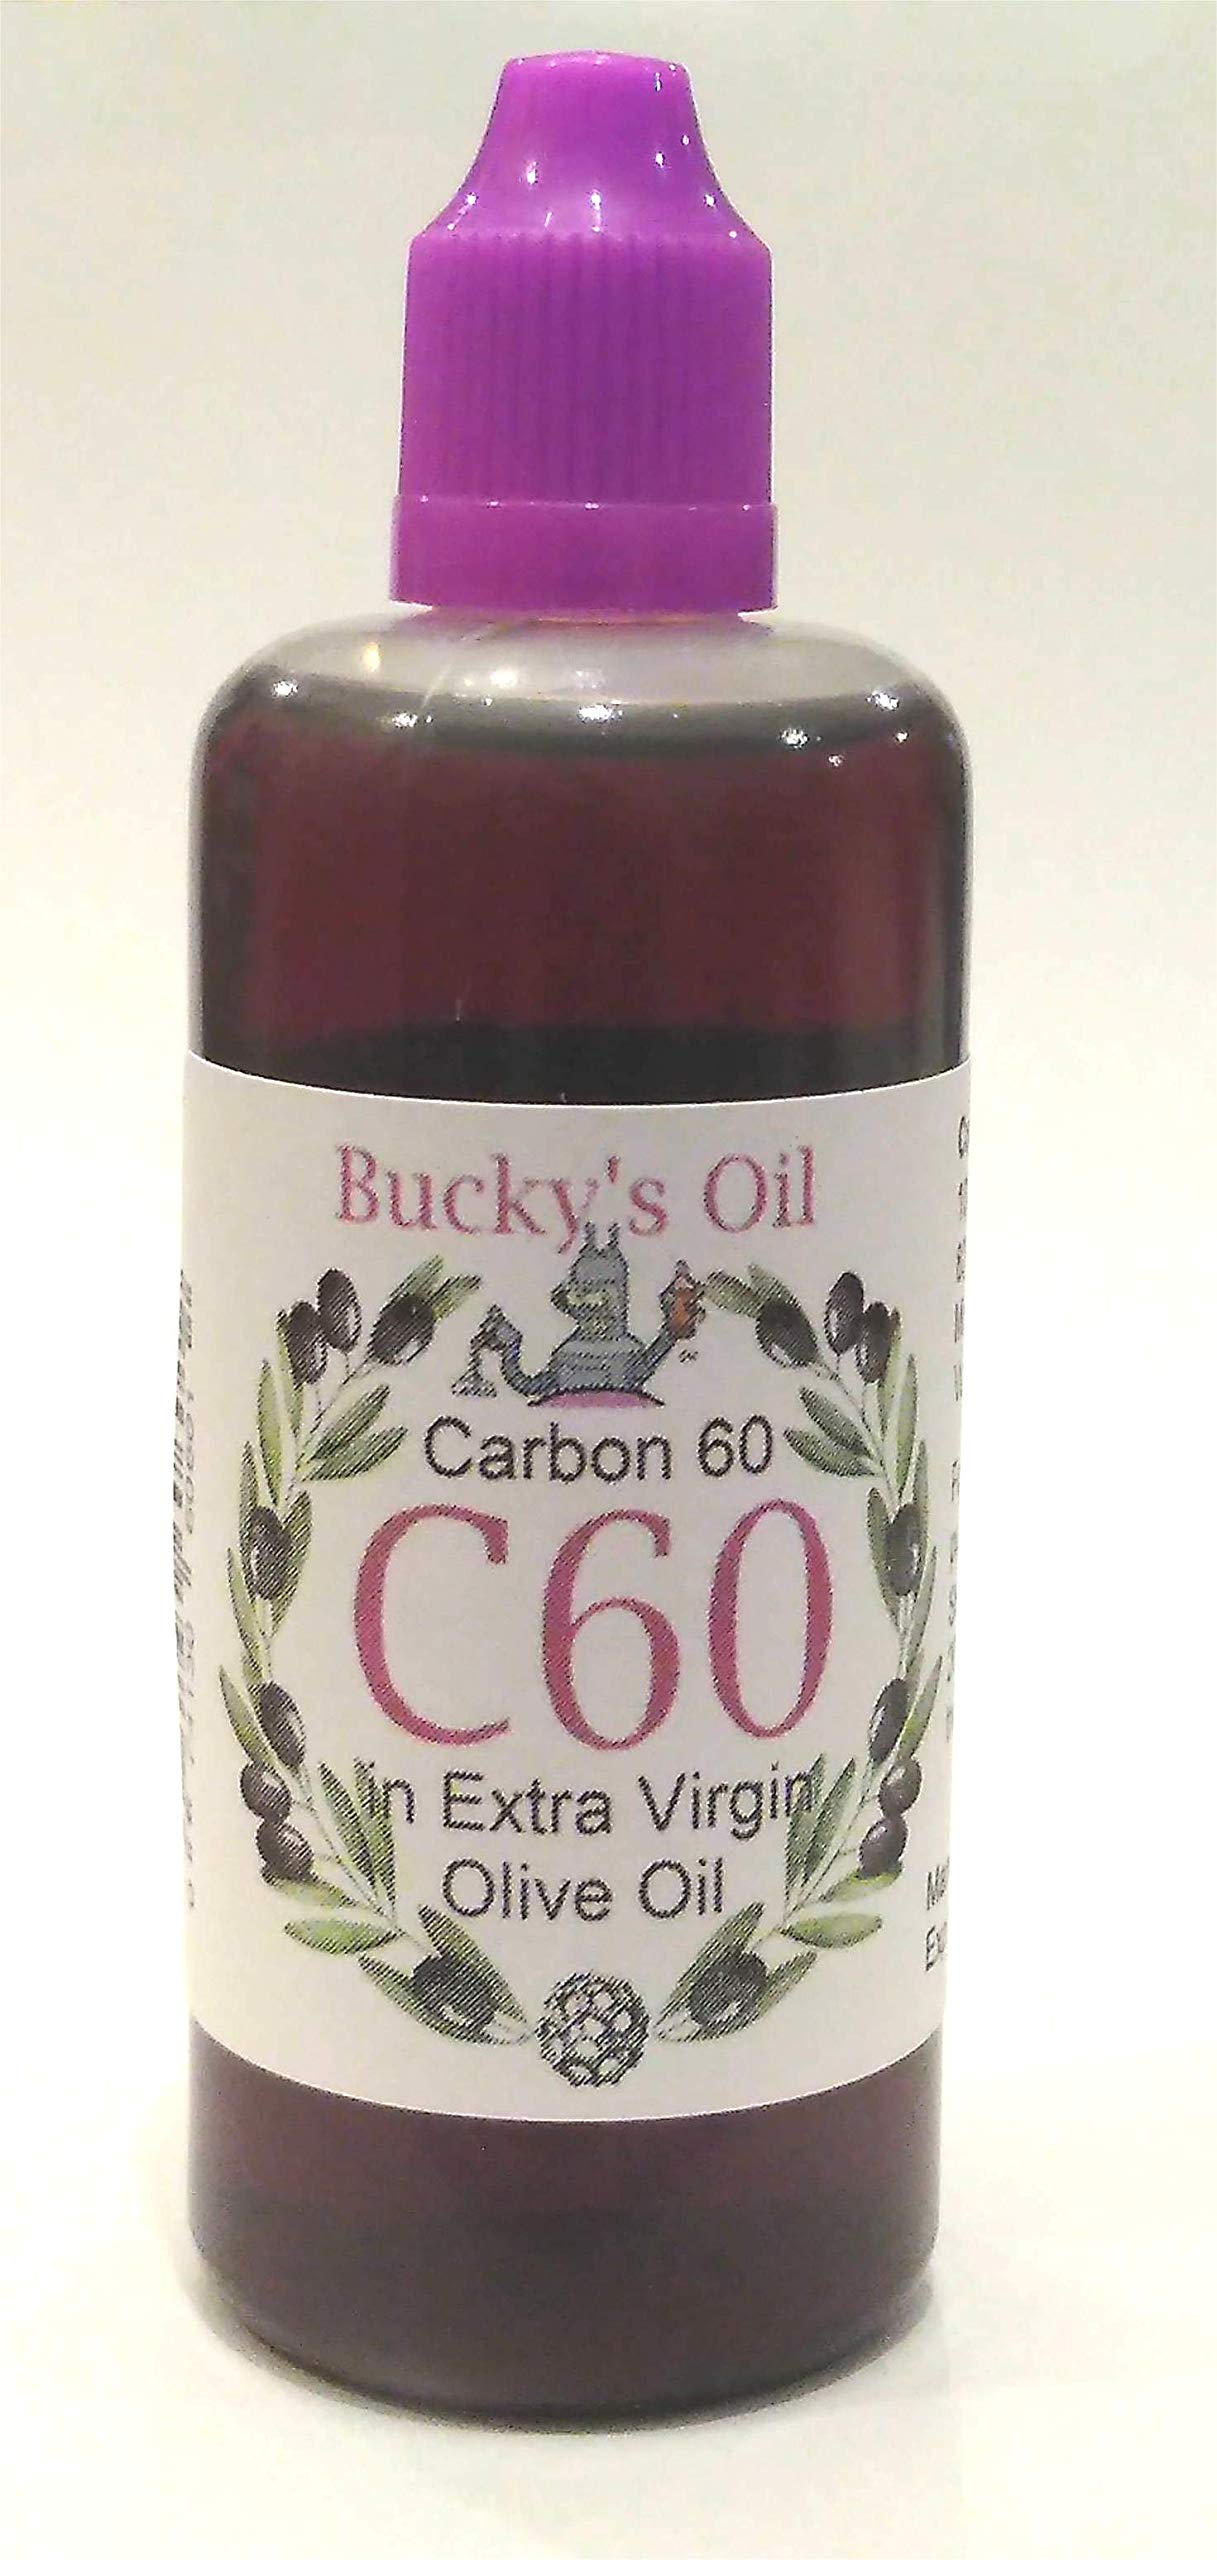 C60 Olive Oil - 100ml Bottle - 82mg Carbon 60: 99.9% in Extra Virgin Olive Oil, Lipofullerene by Bucky's Oil